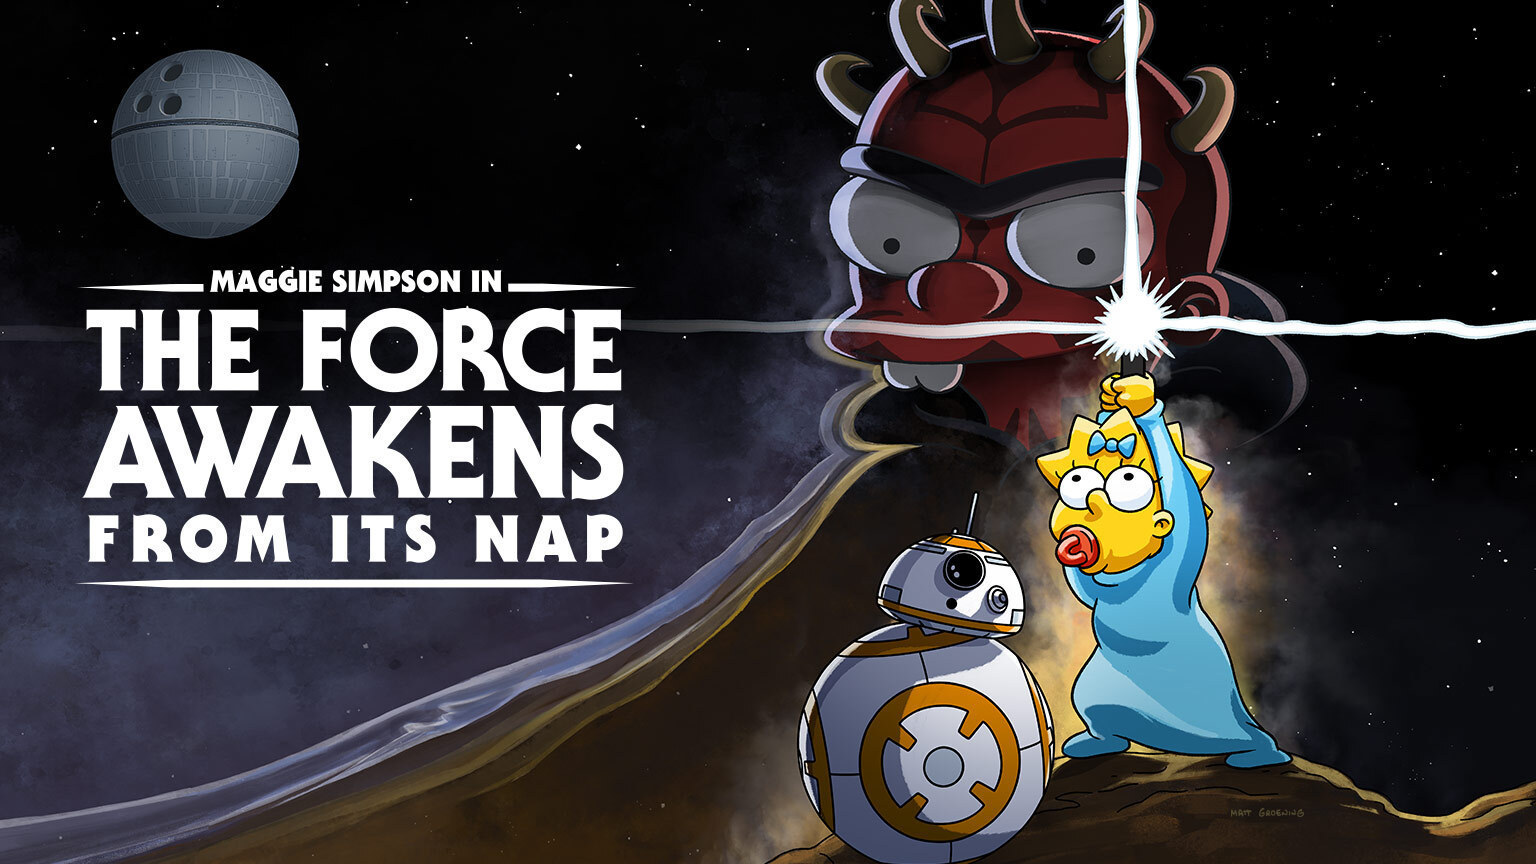 """The Force Awakens From Its Nap"": Behind-the-Scenes of the Surprise Star Wars Day Simpsons Short"